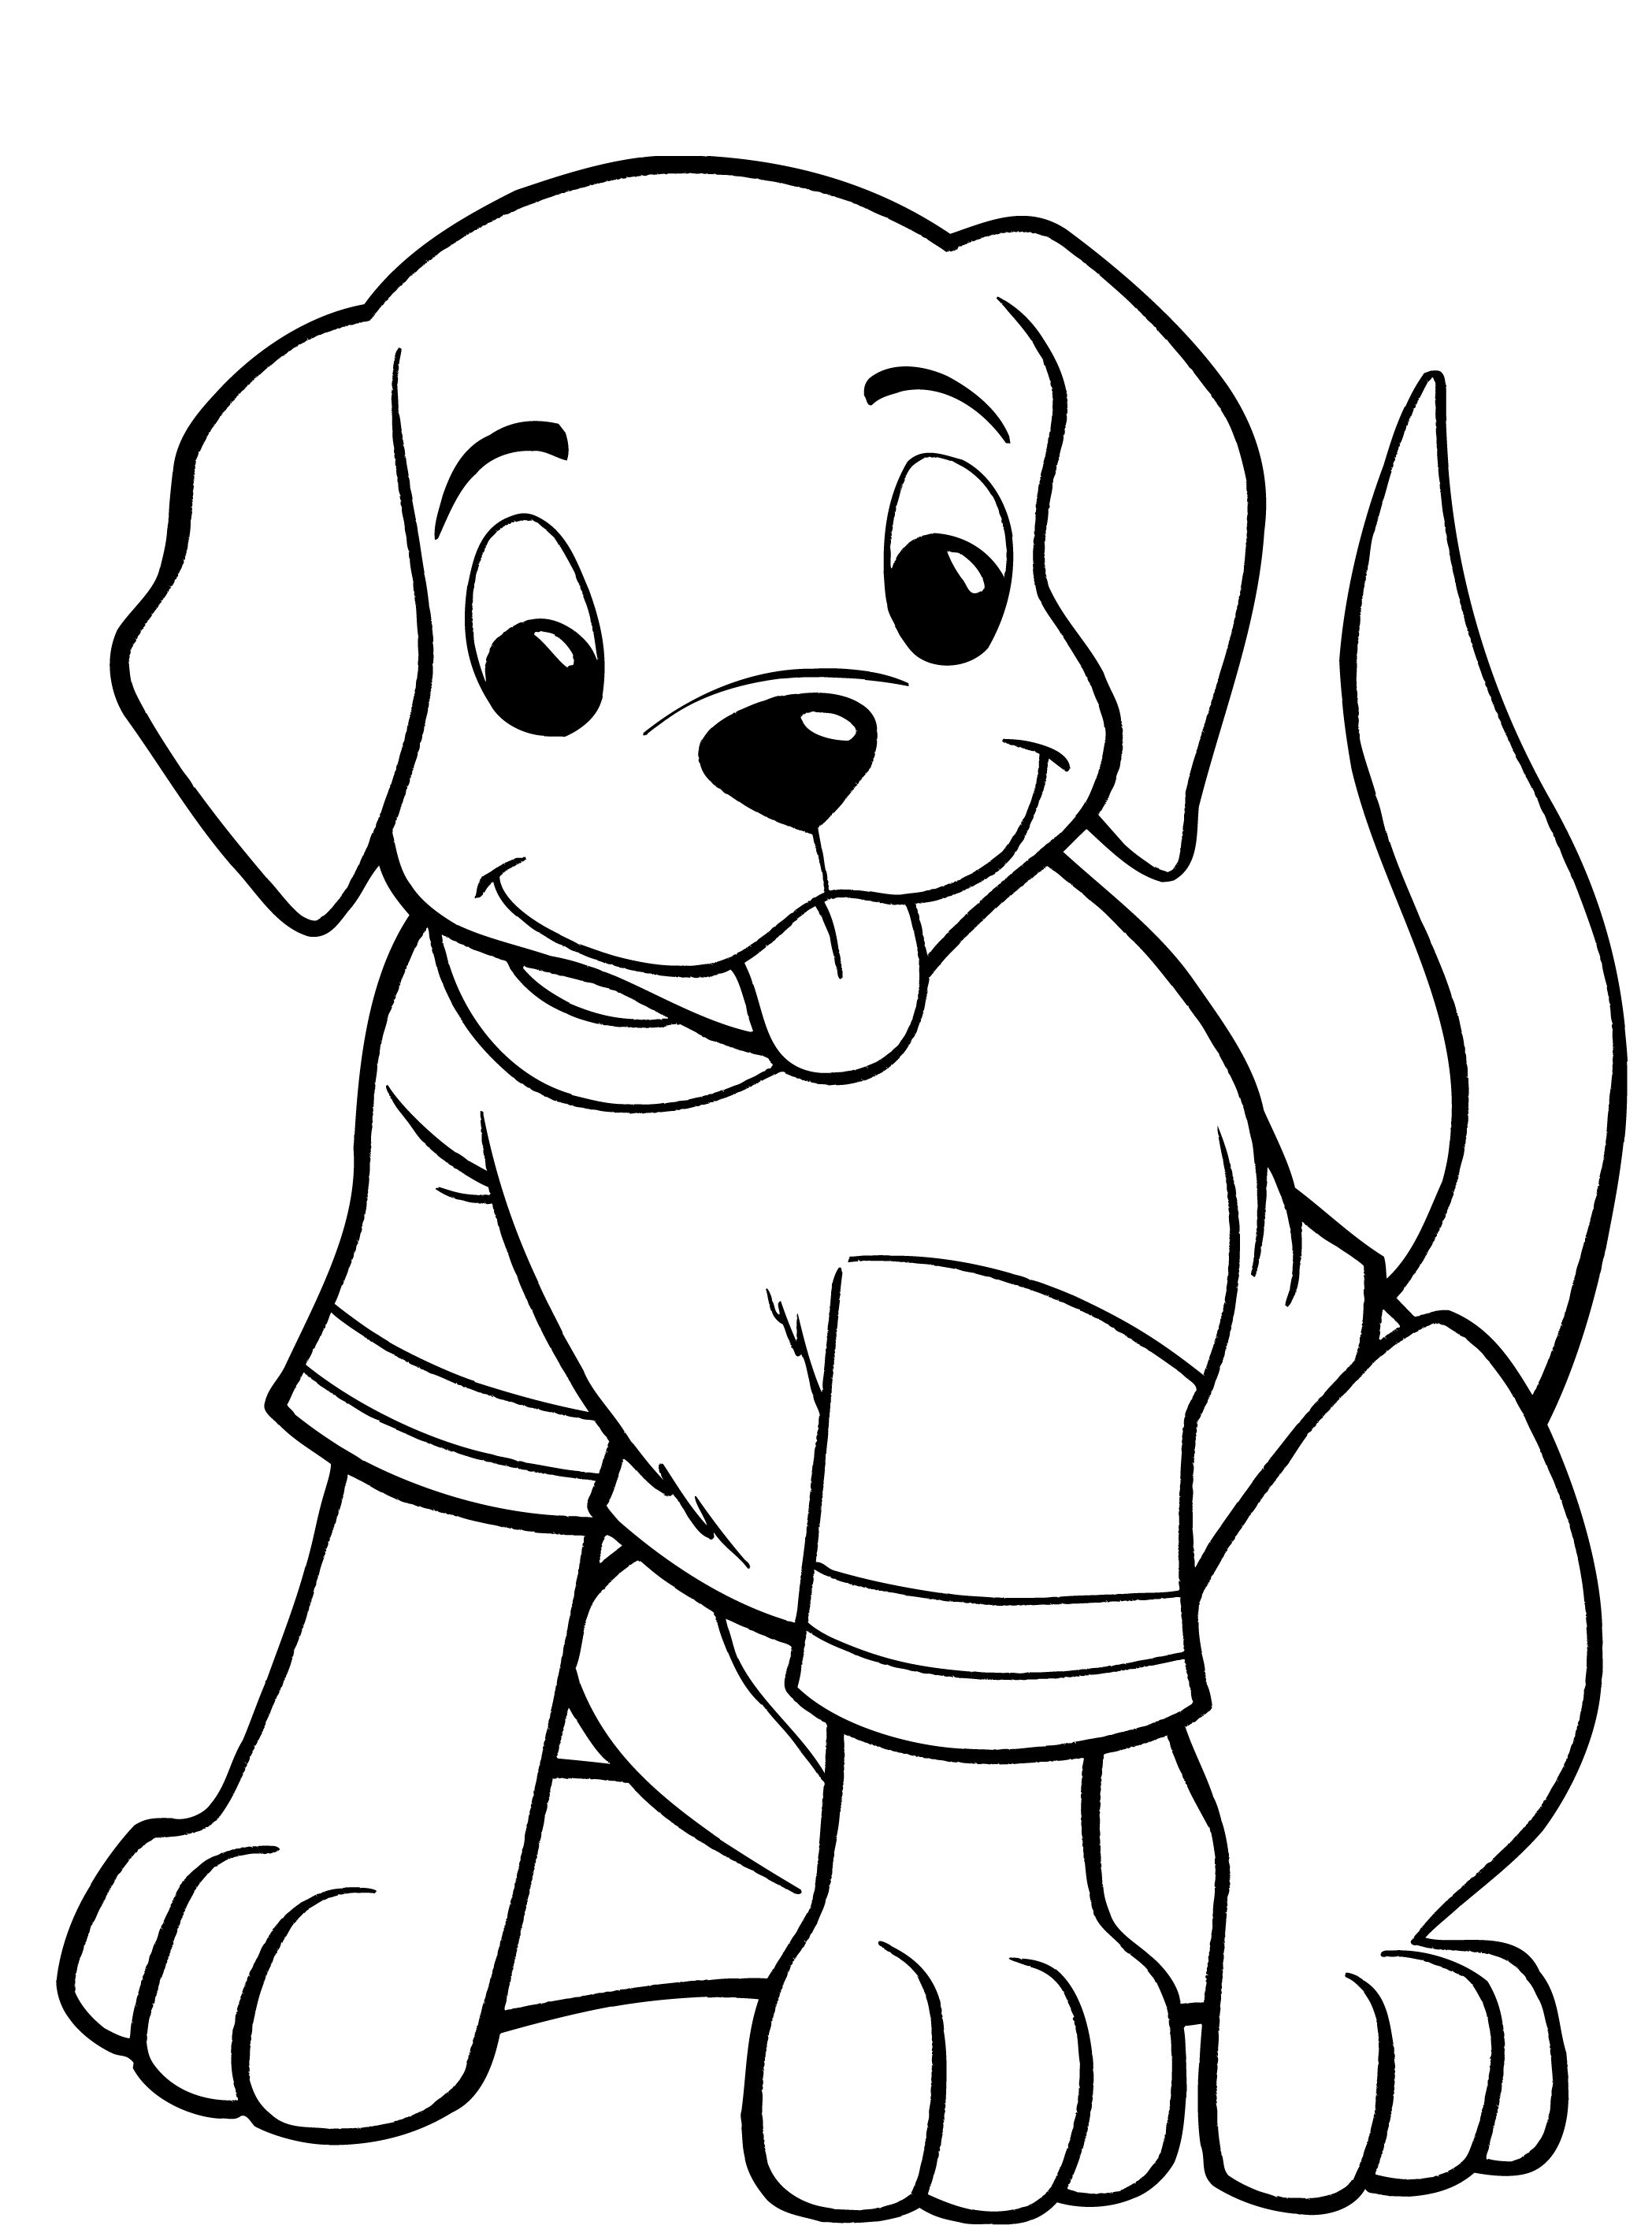 dog coloring pages to print out dog coloring pages 2018 dr odd dog print coloring out pages to